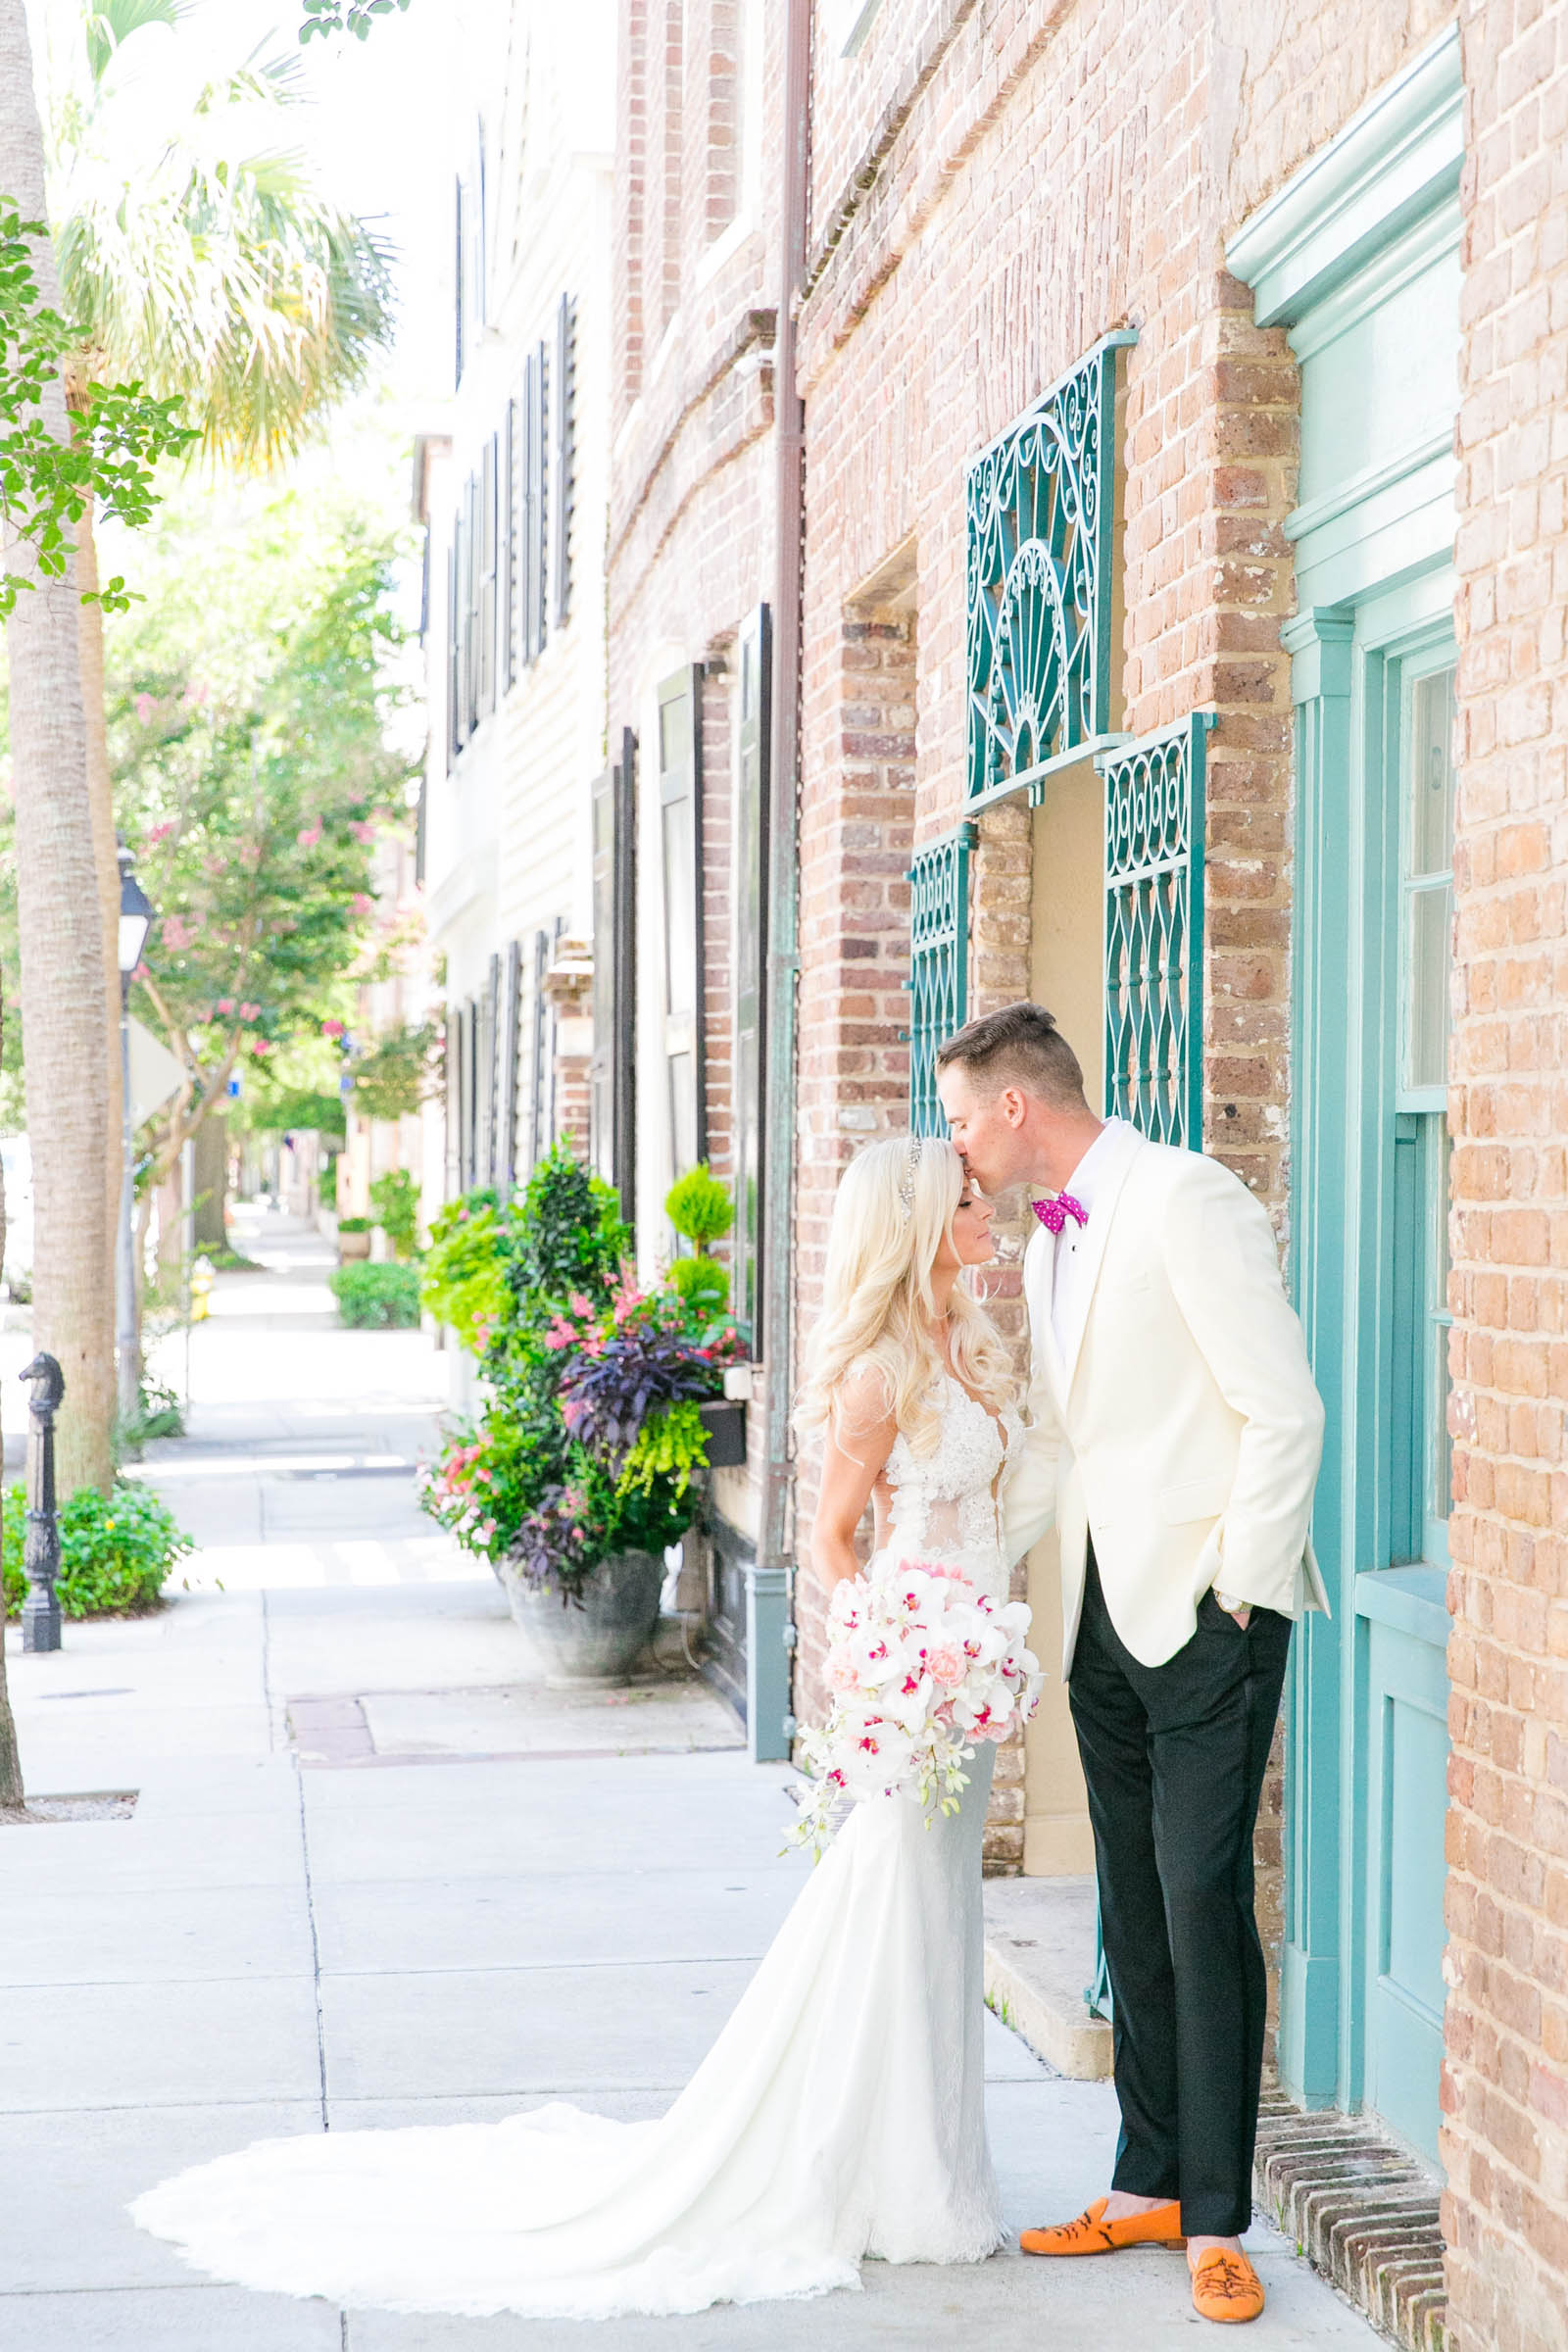 Light and airy outdoor couple portrait - photo by Dana Cubbage Weddings